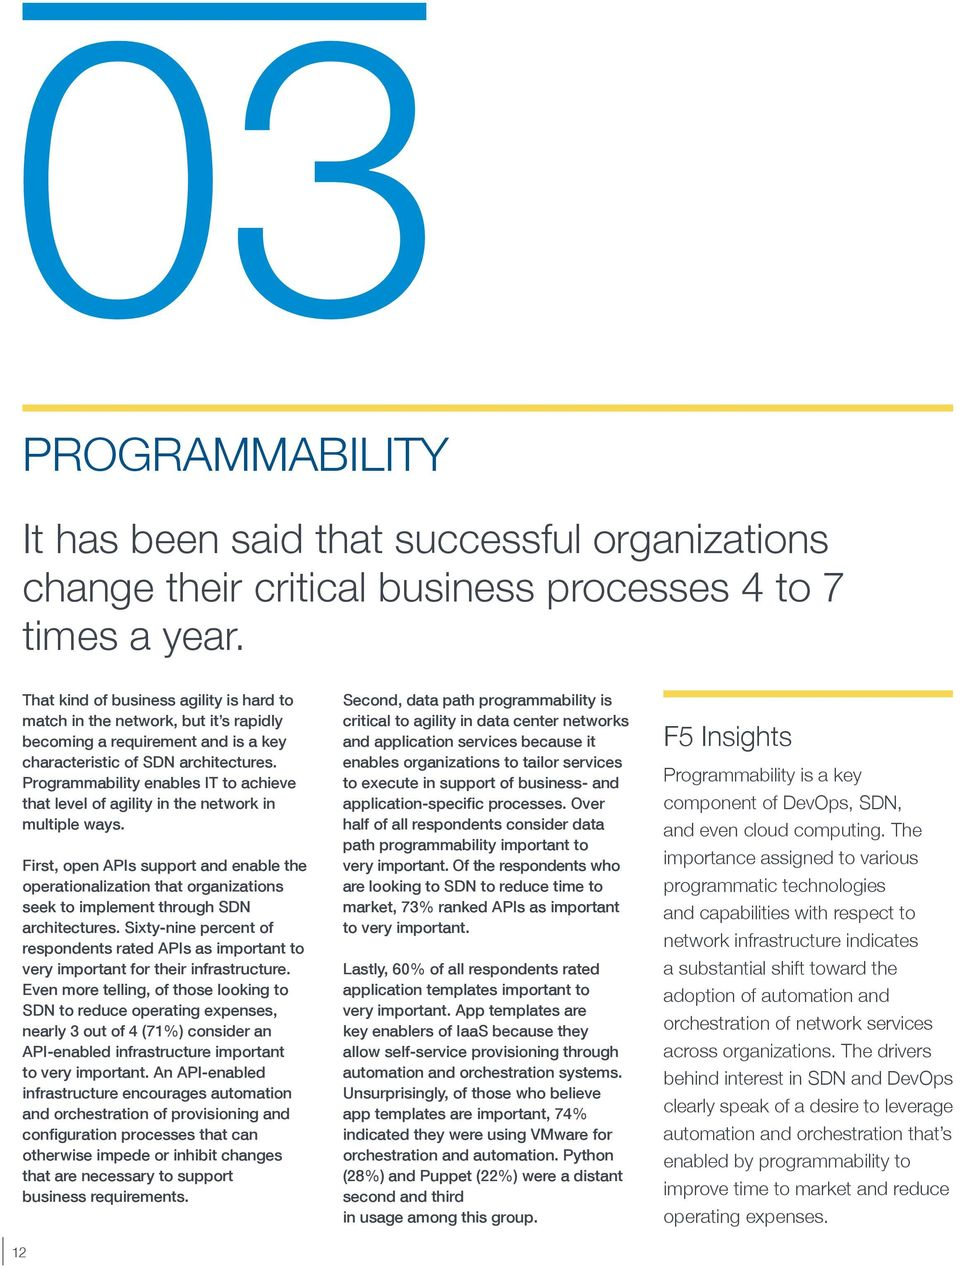 Programmability enables IT to achieve that level of agility in the network in multiple ways.